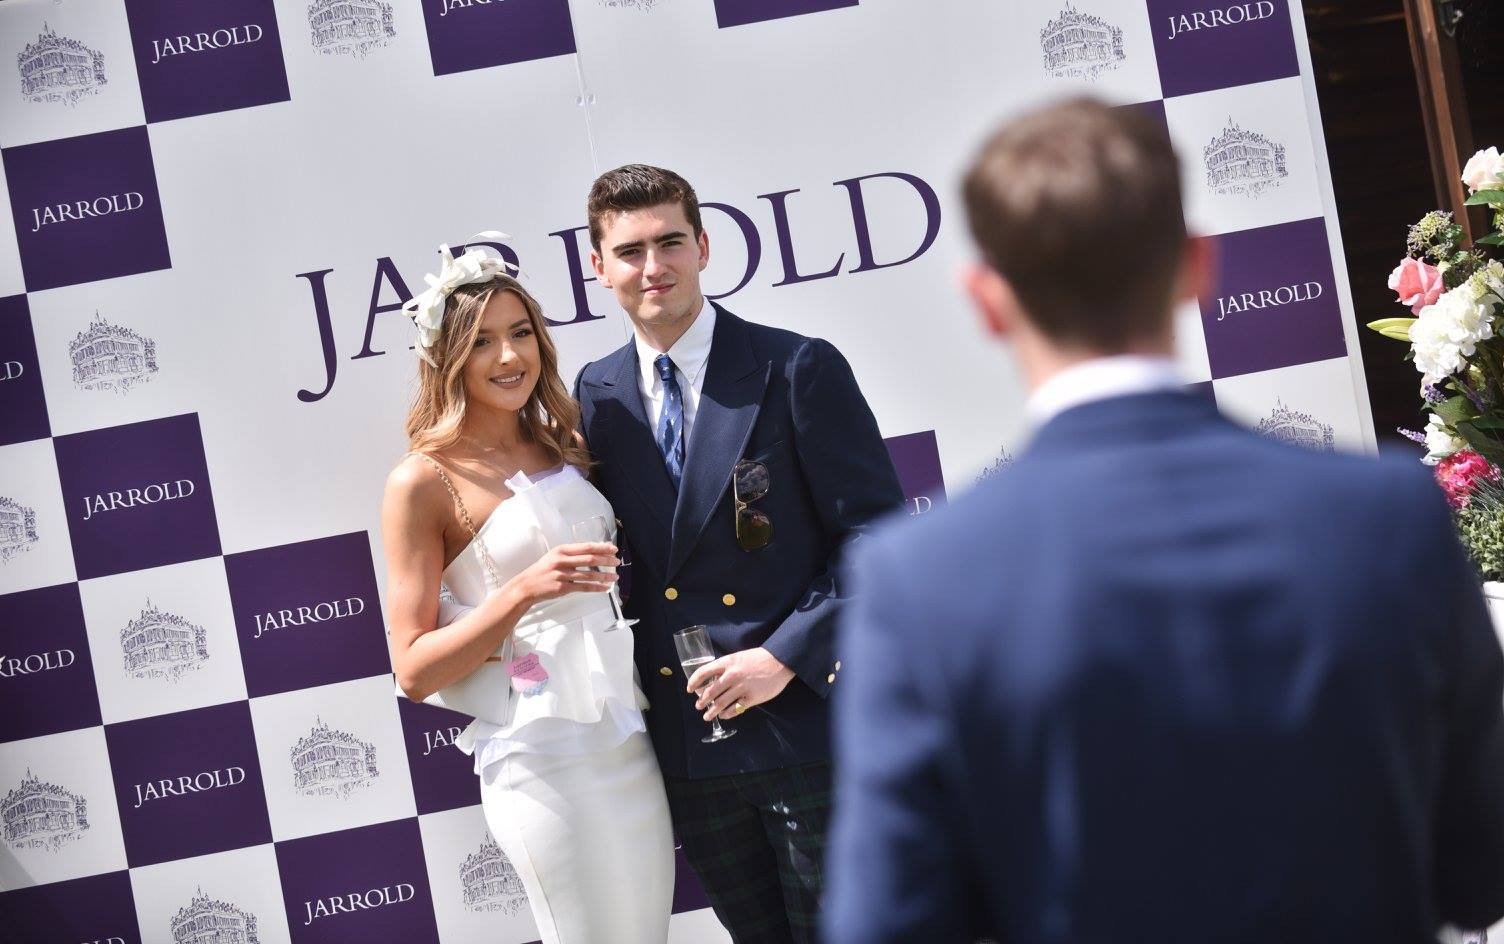 JARROLD LADIES DAY, Sunday 2nd June 2019